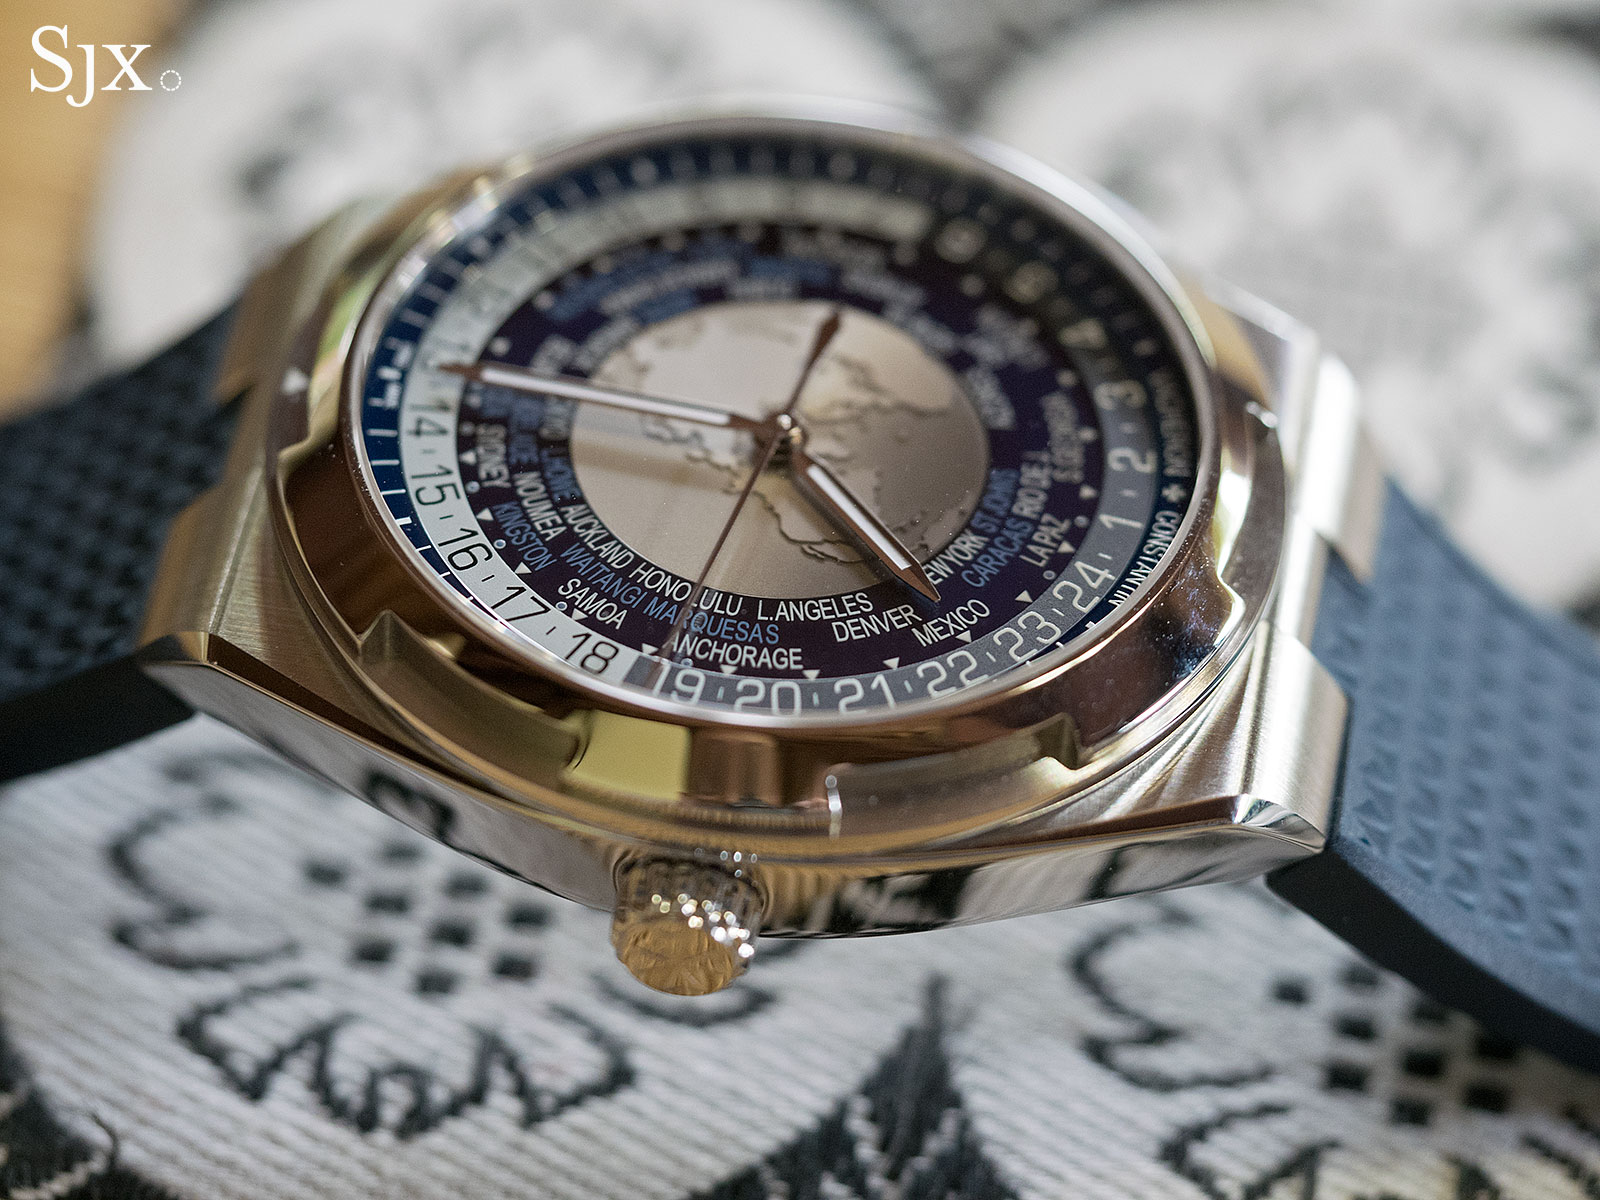 Vacheron Constantin Overseas World Time Kyoto 6